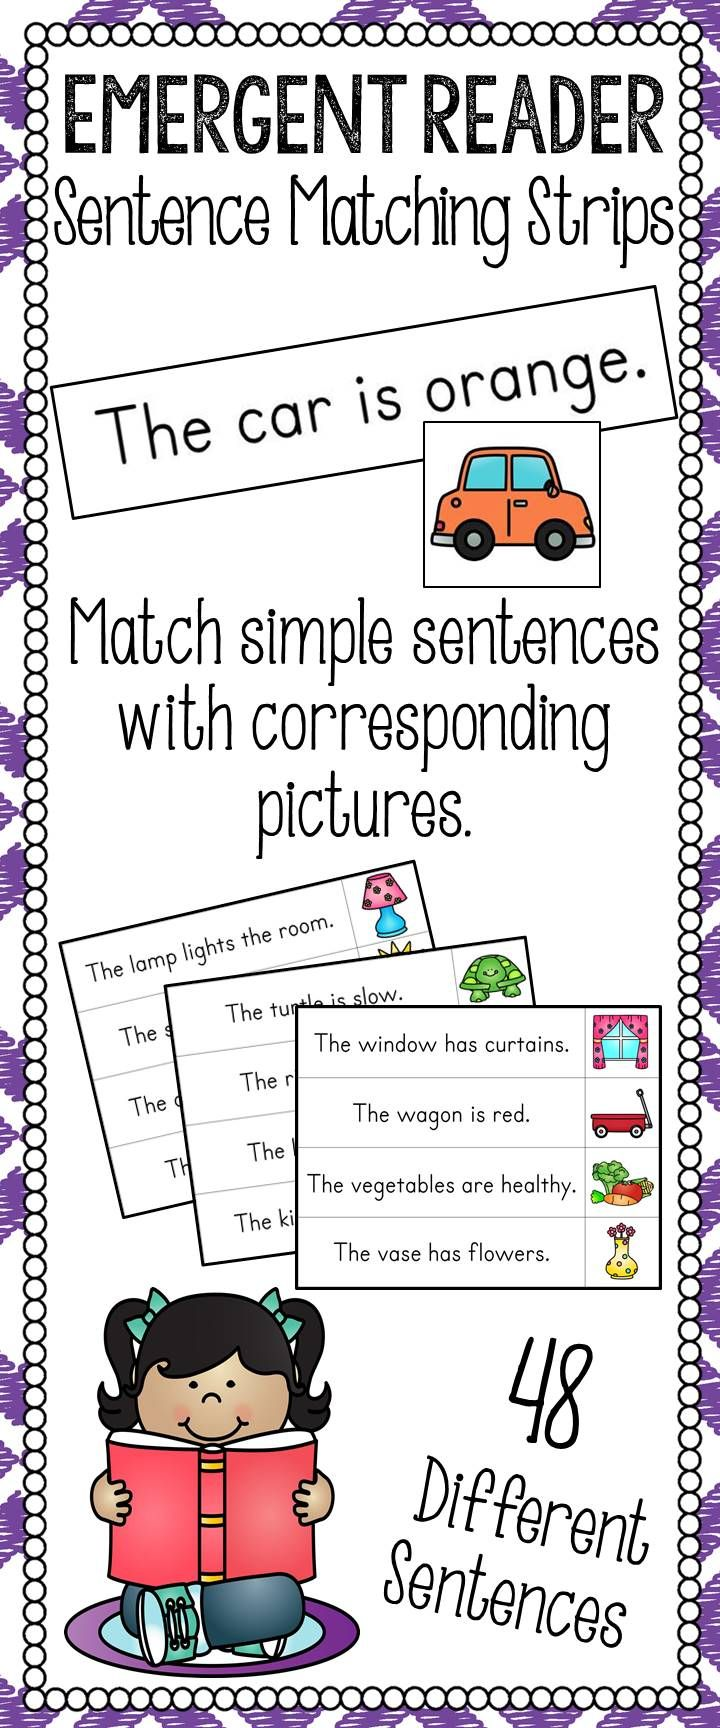 Emergent Reader Sentence Matching Strips  Let your students match words to pictures with this fun twist on emergent reader books! Print, laminate, and cut into strips for students to practice with. Students can use a table, desk, or even the carpet to match each sentence with the corresponding picture!   Includes 48 different sentence strips and matching pictures! Perfect for multiple uses of this center without re-using cards!